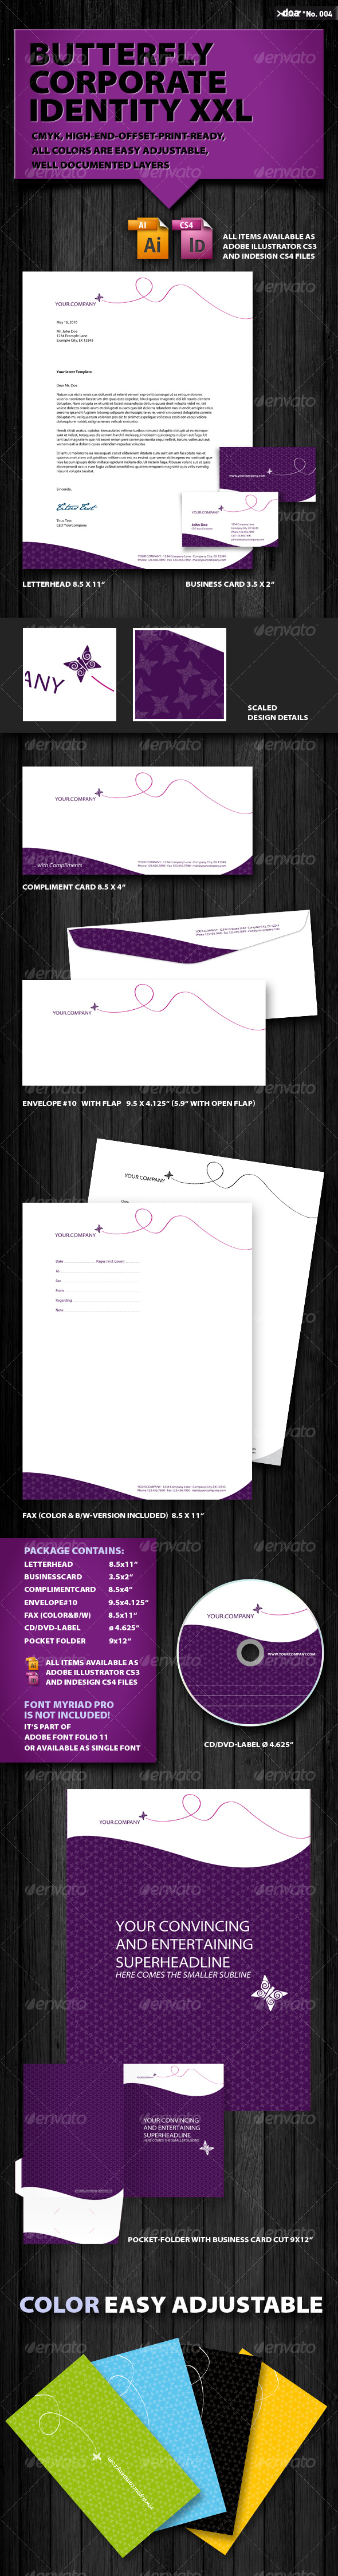 Butterfly Corporate Identity XXL - Stationery Print Templates